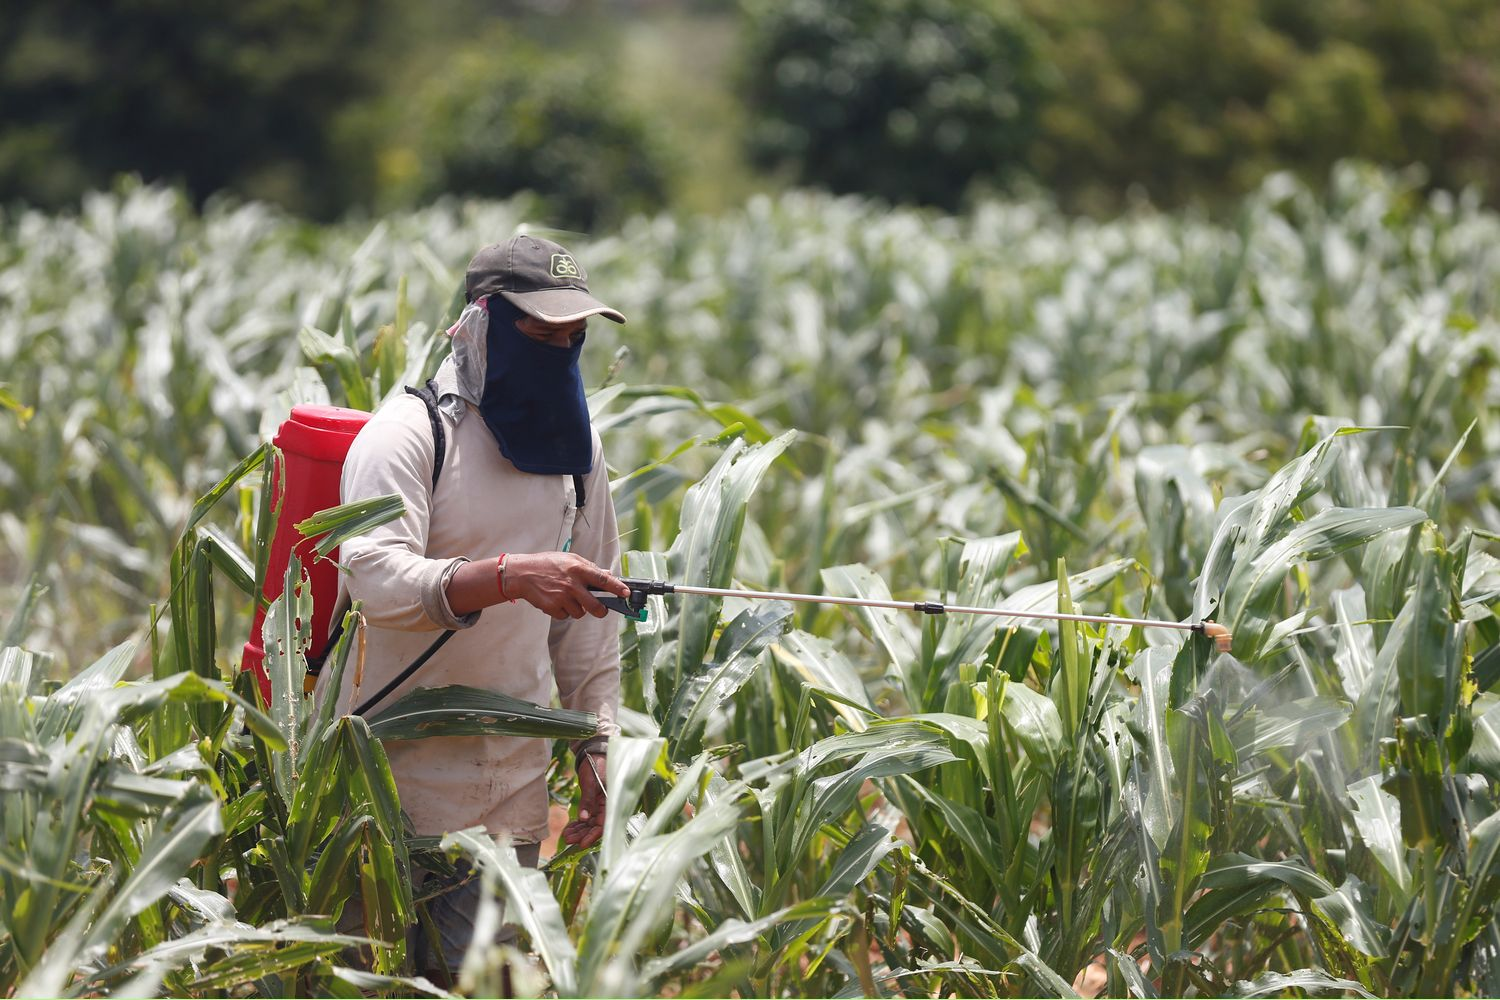 A worker sprays insecticides at a maize field destroyed by Fall Army Worm at Pak Chong district, Nakhon Ratchasima, on Wednesday. (Reuters photos)